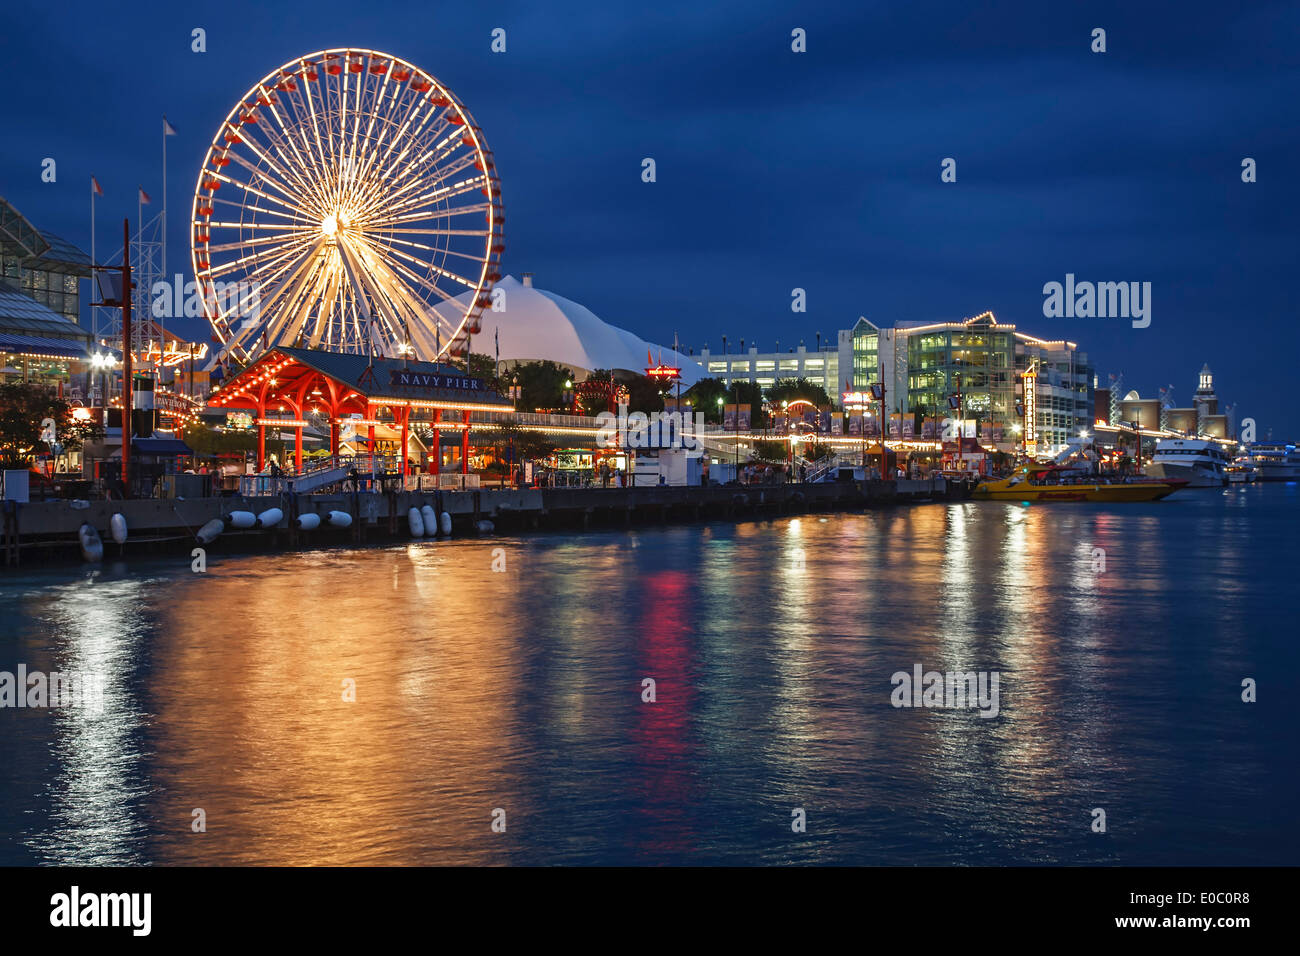 Ferris wheel and Navy Pier, Chicago, Illinois USA - Stock Image